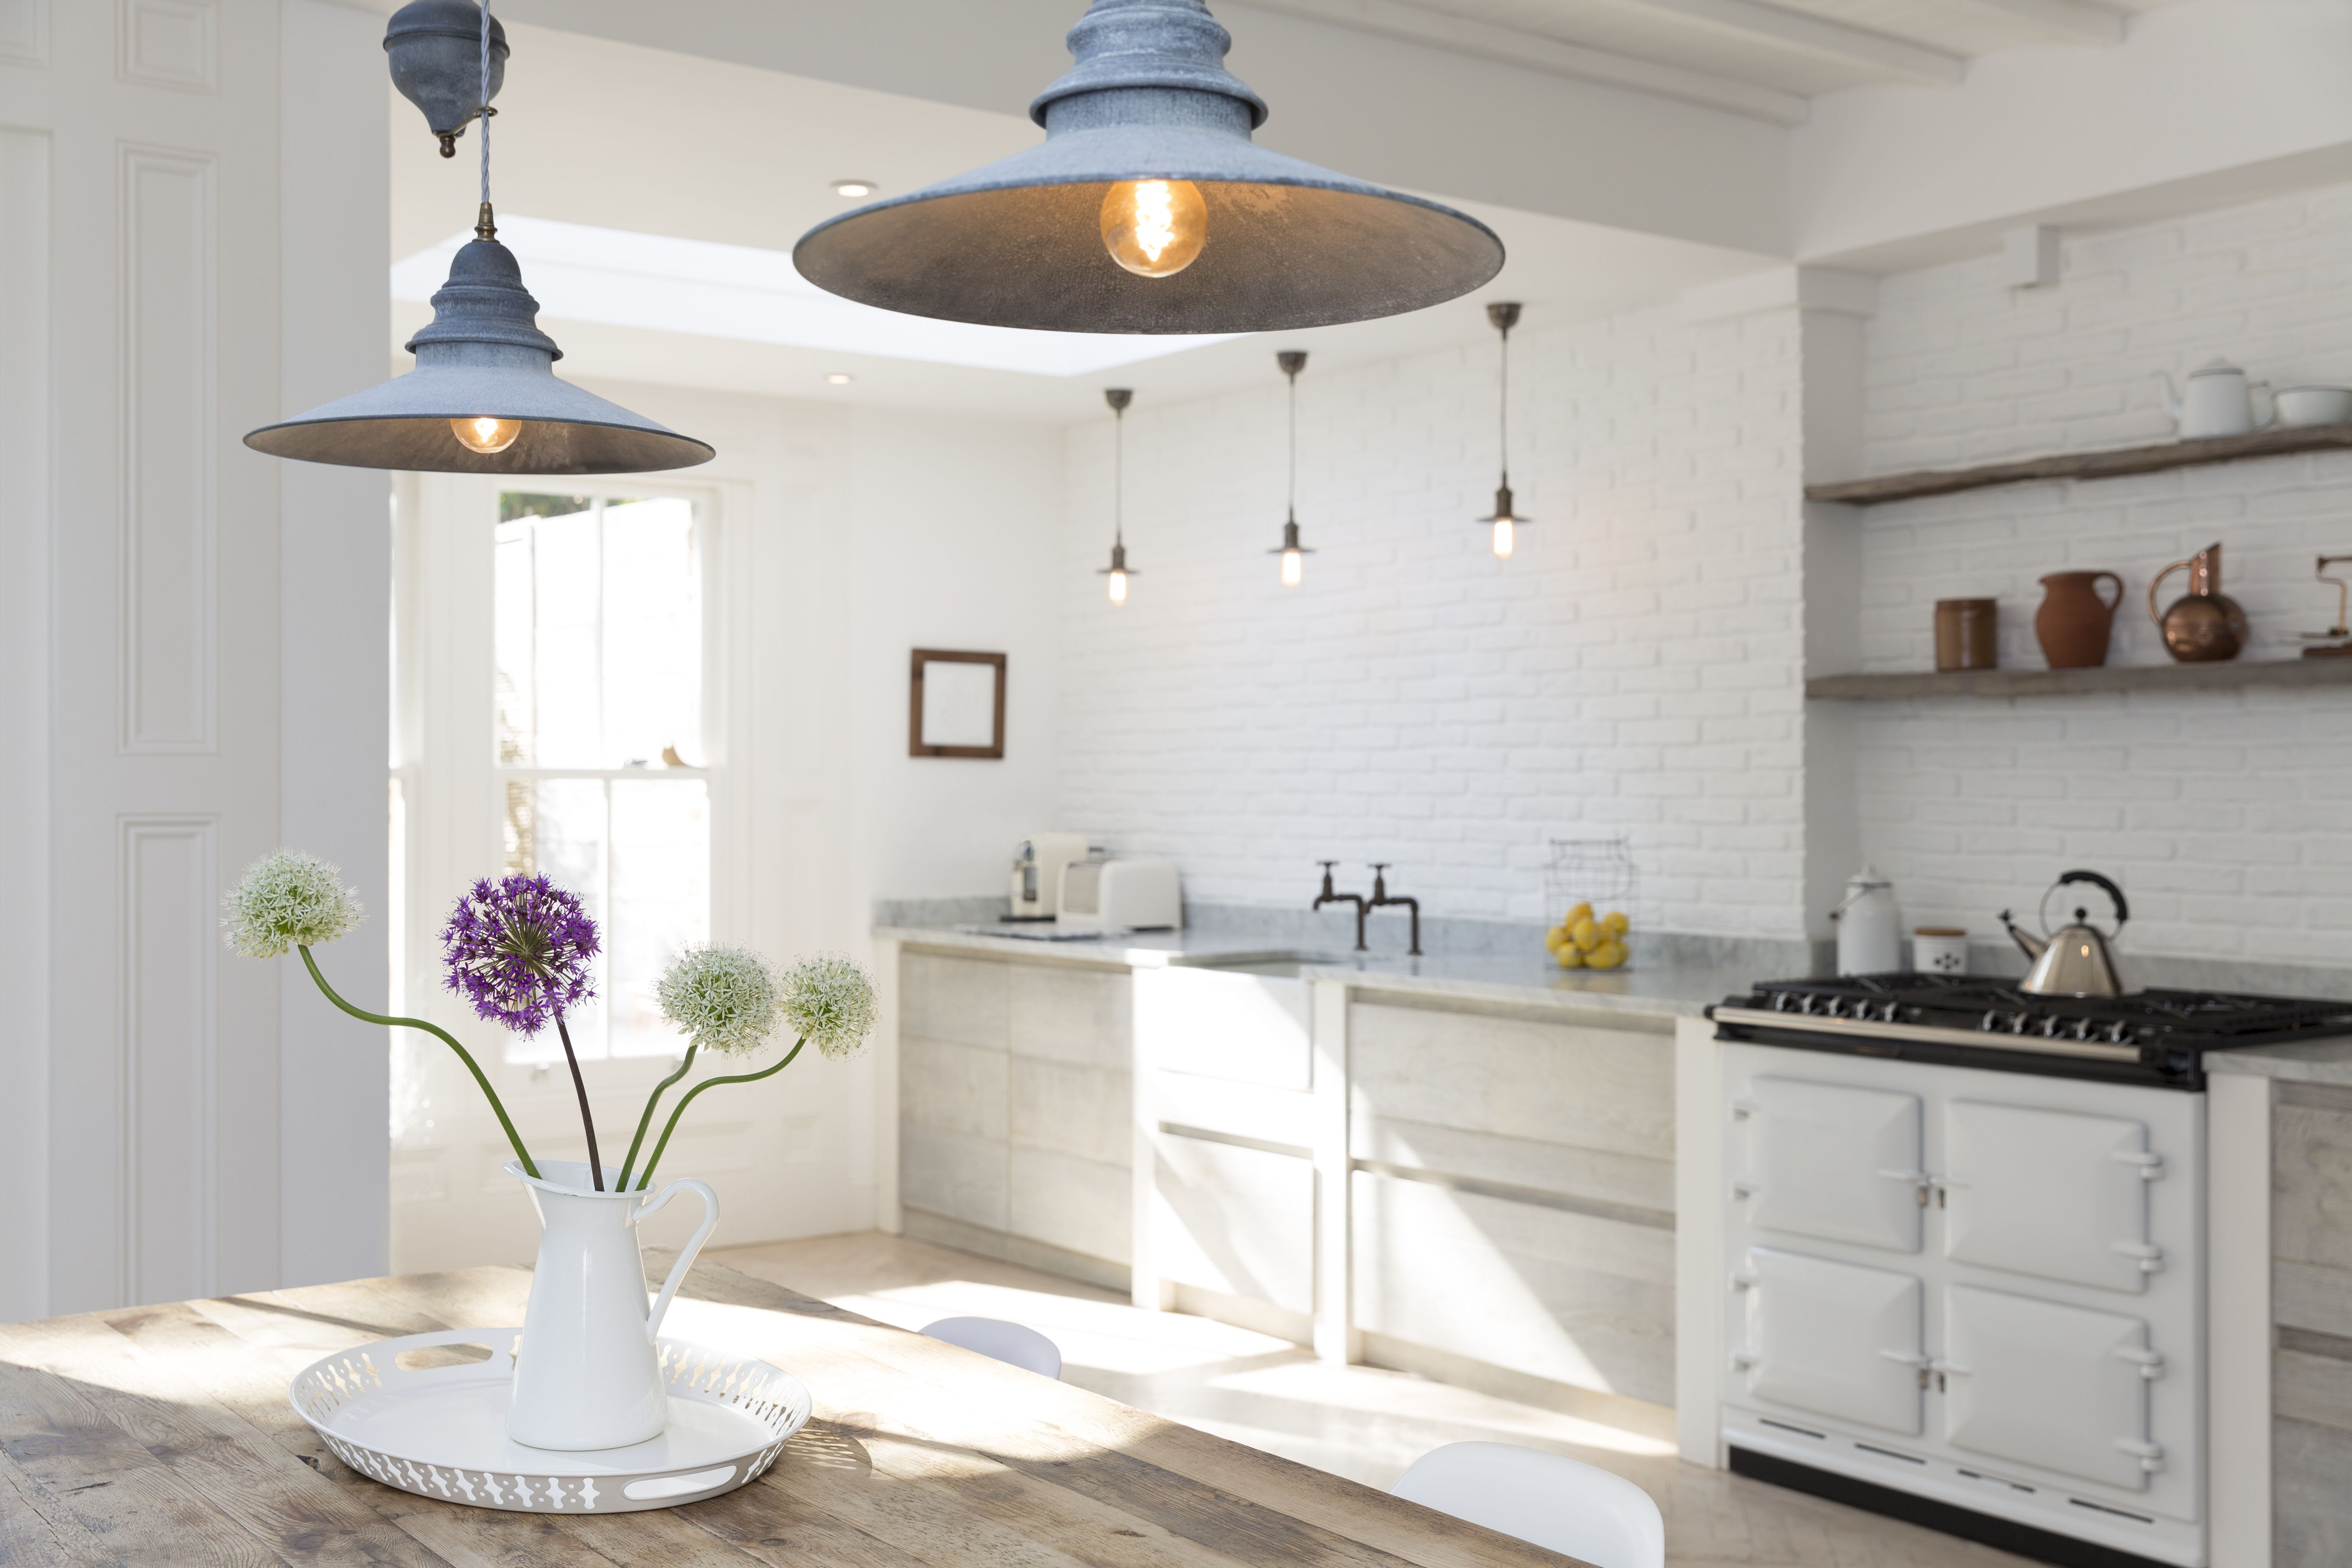 General Kitchen Lighting: Types